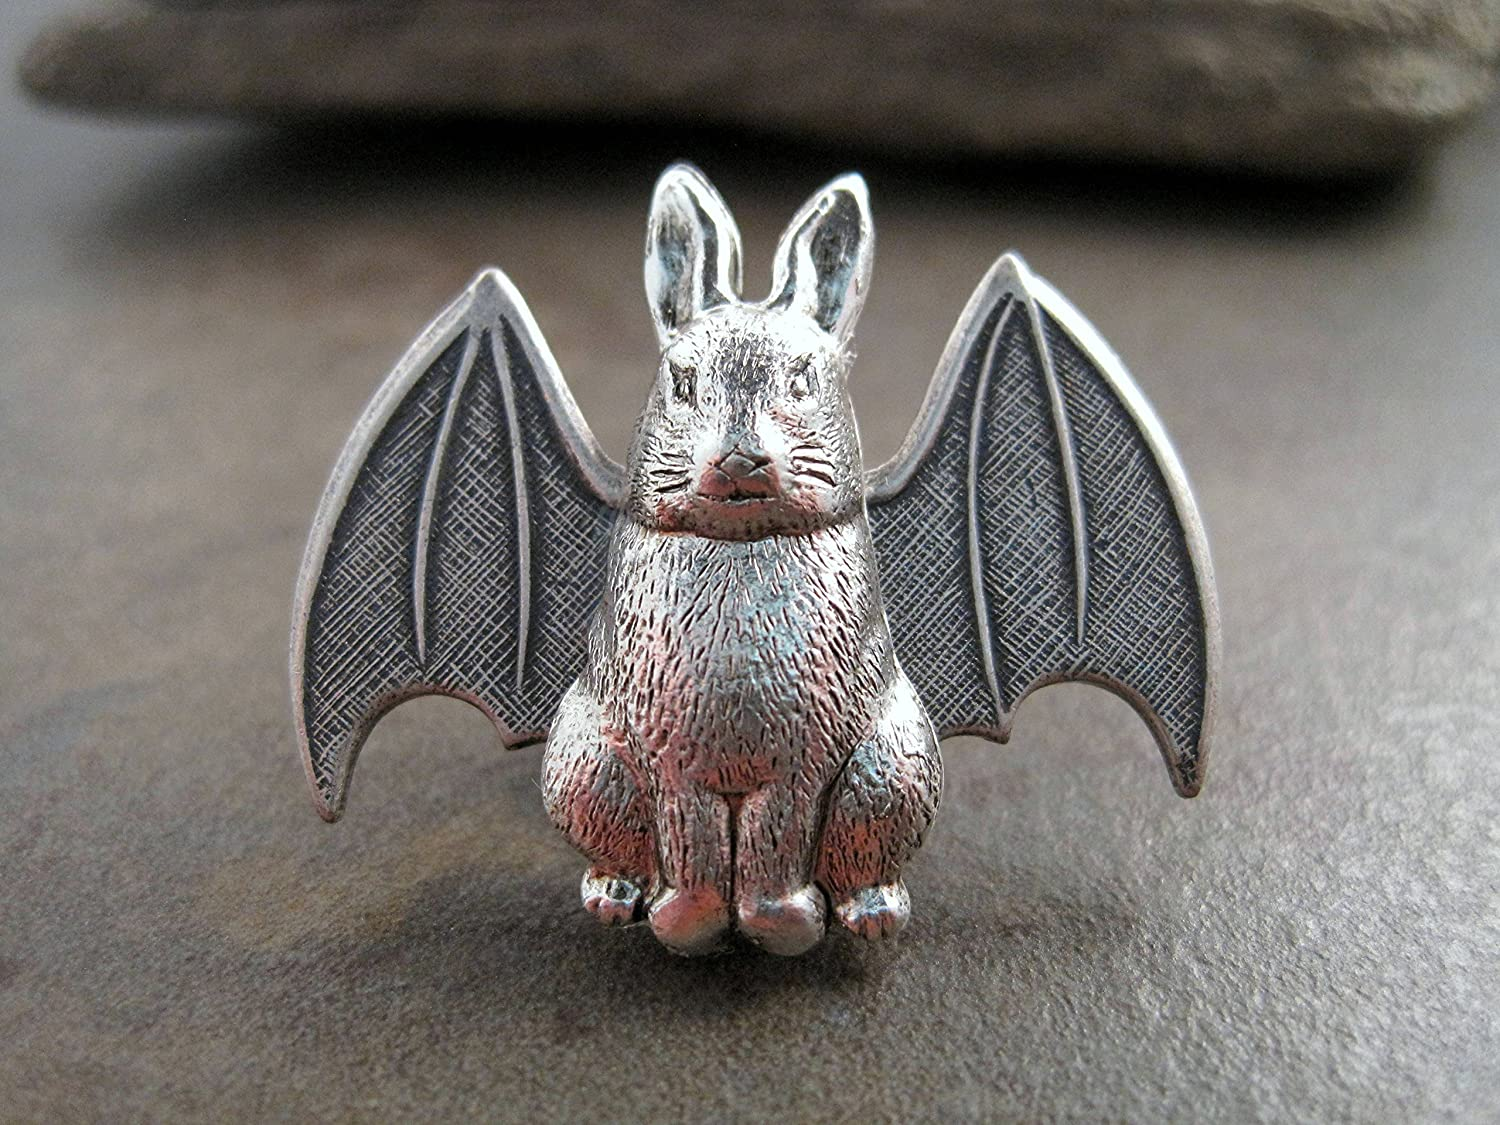 Handmade Steampunk Silver Bunny With Bat Wings Brooch Tie Tack